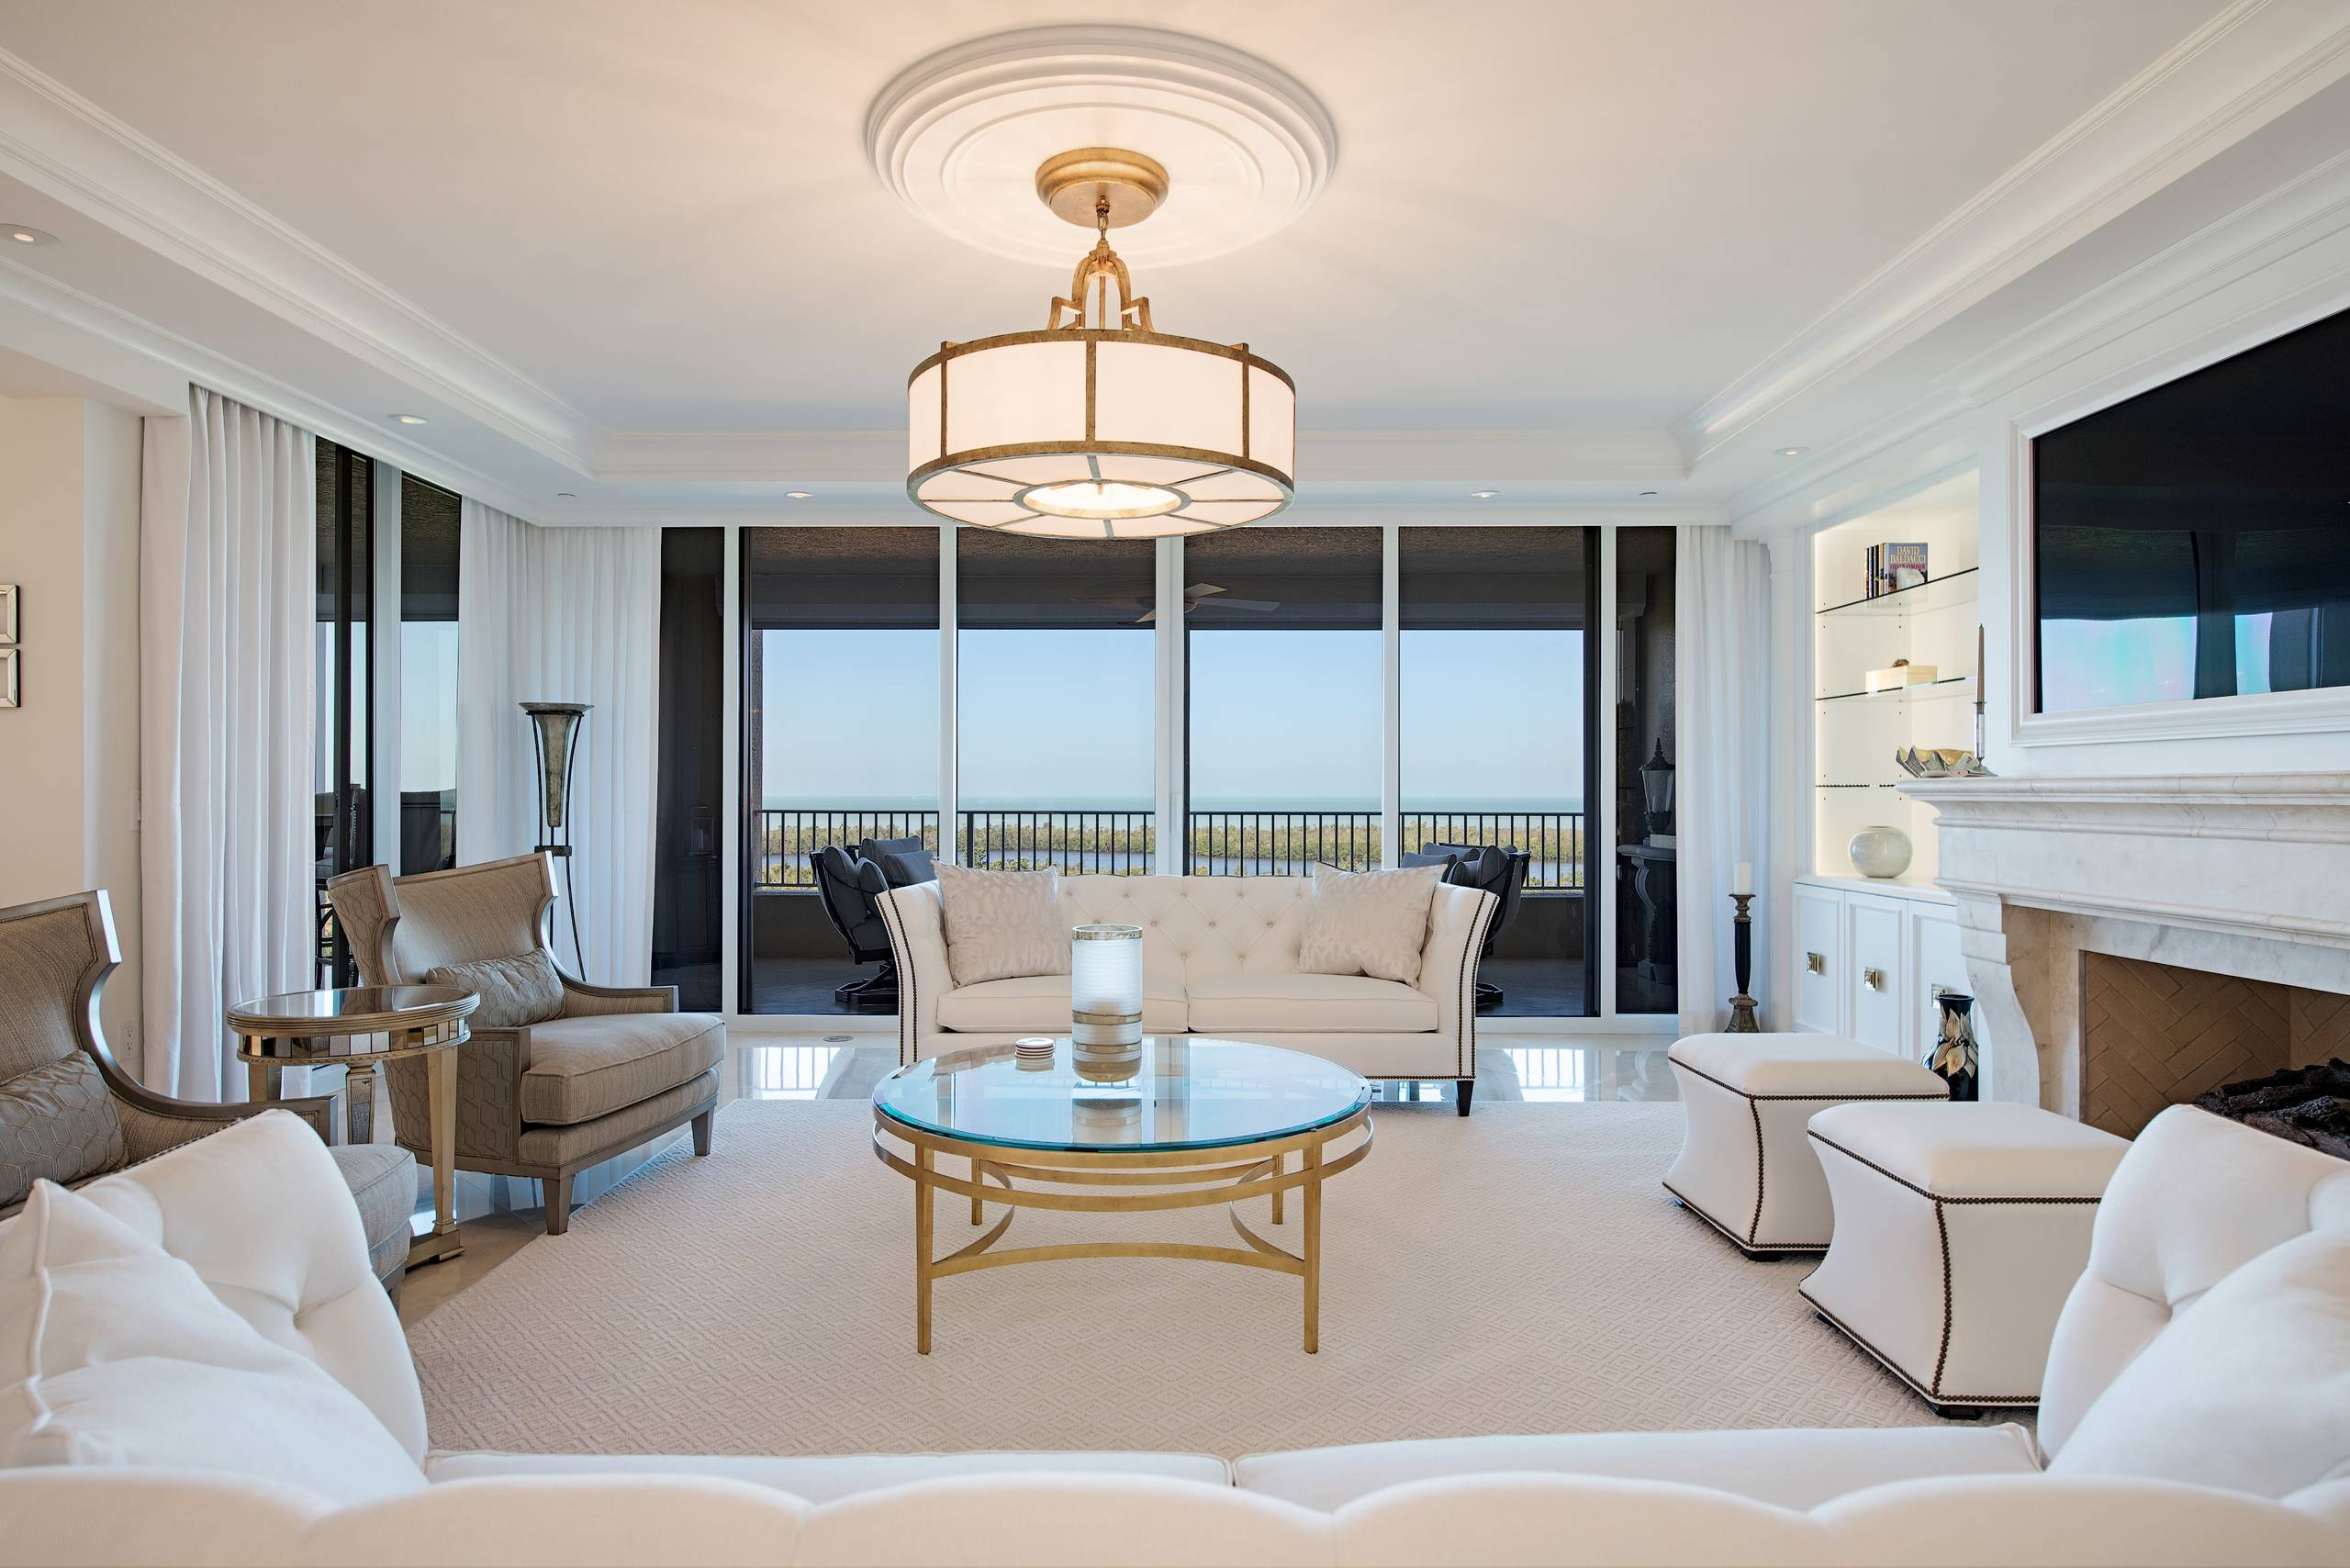 Certified Luxury Builders-41 West-Naples-Pelican Bay-Cap Ferrat-High-rise Condo